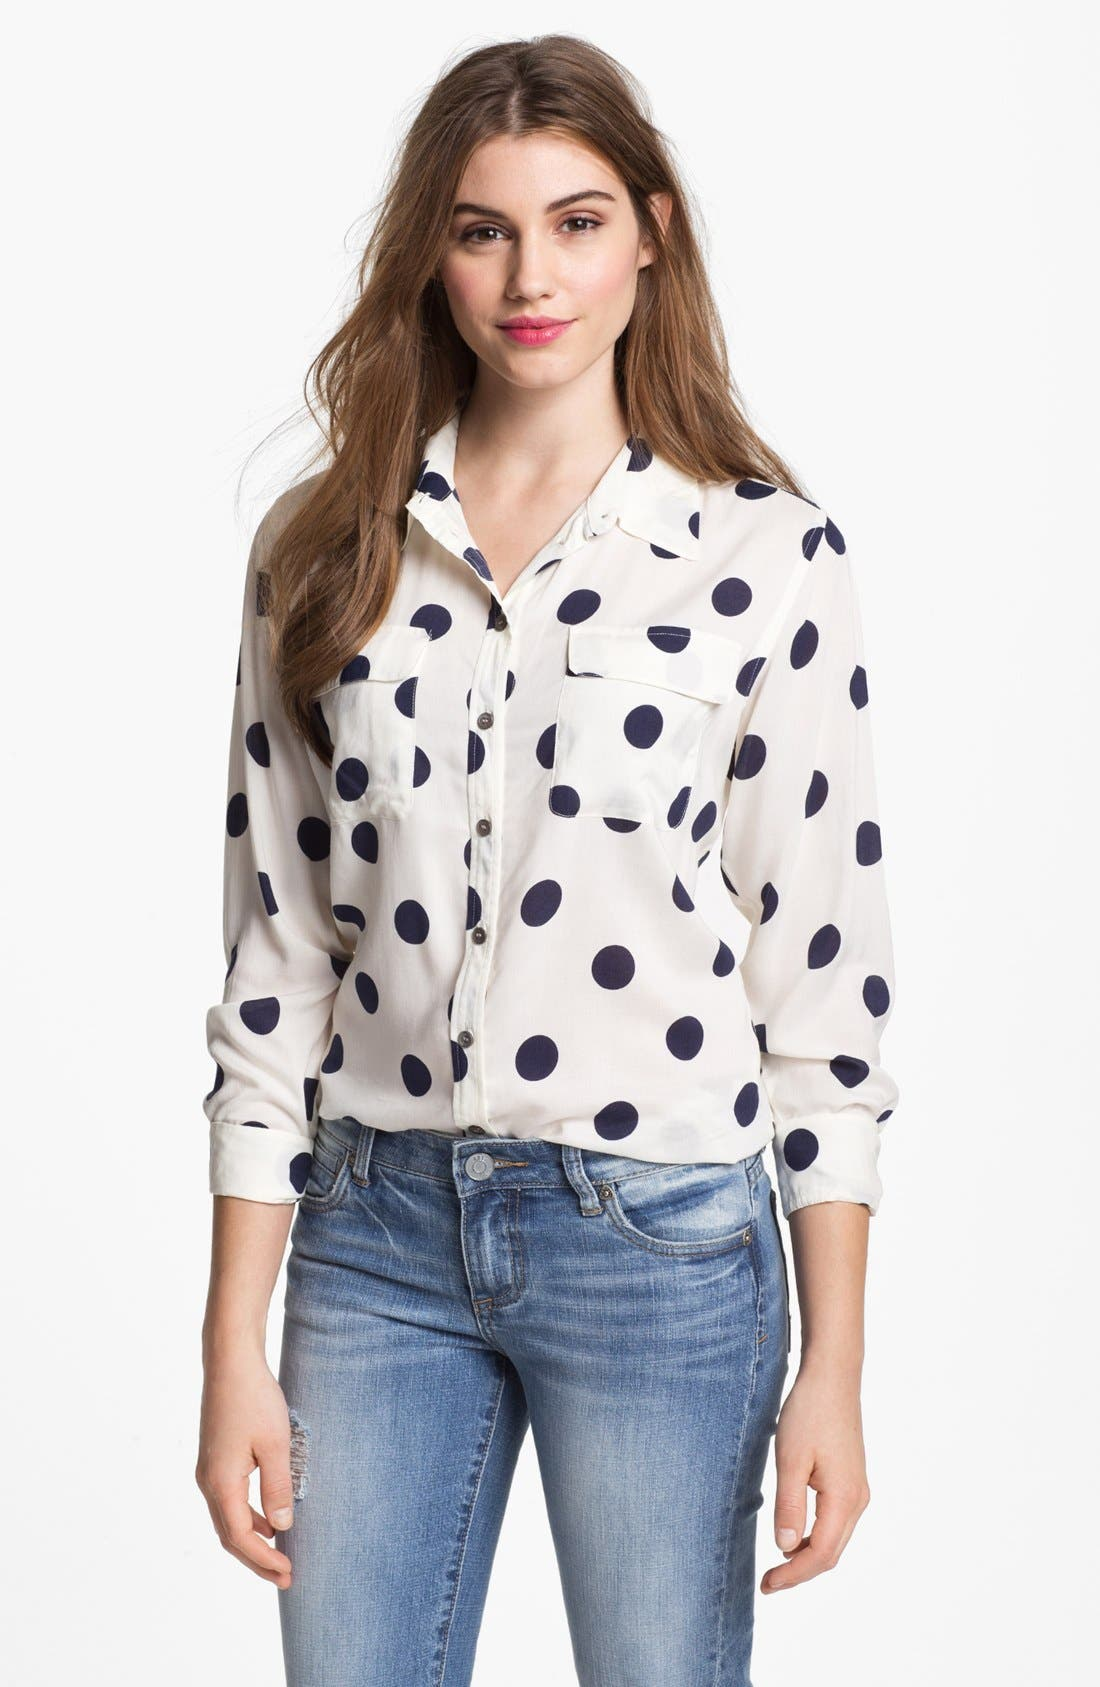 Alternate Image 1 Selected - Two by Vince Camuto Polka Dot Shirt